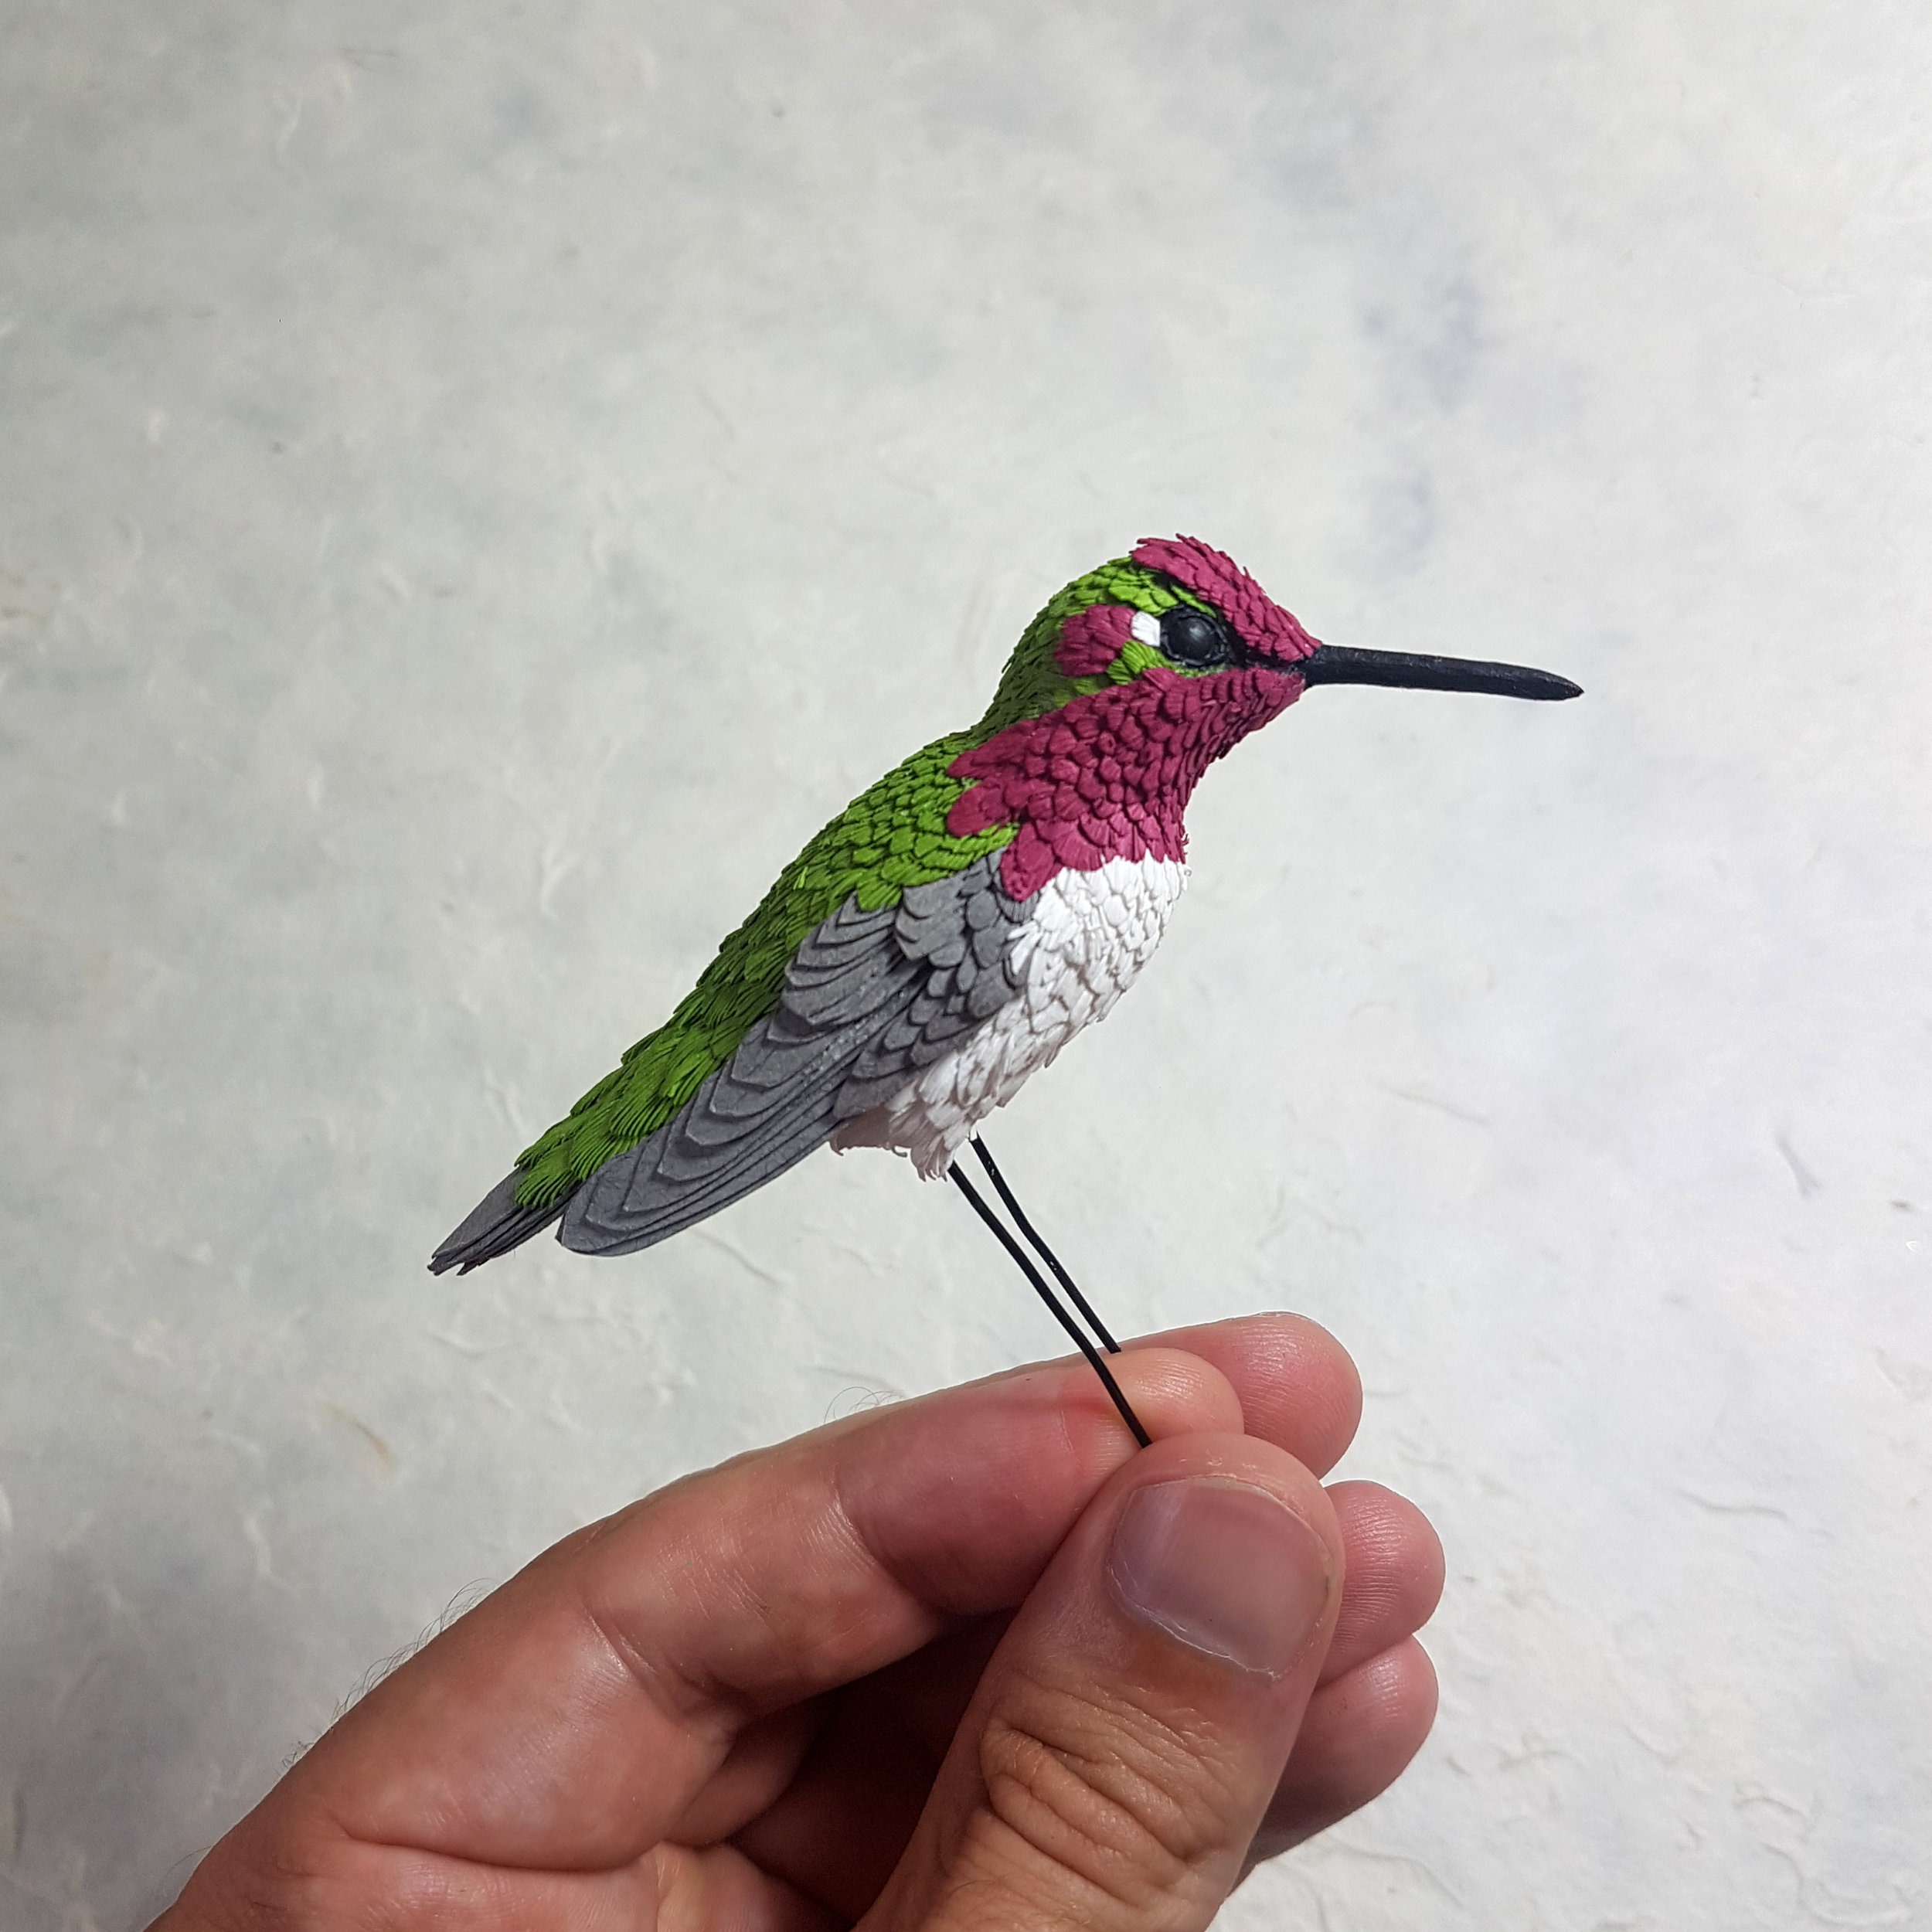 The stunning Anna's hummingbird here, can't wait to add all the iridescent paints to this one.